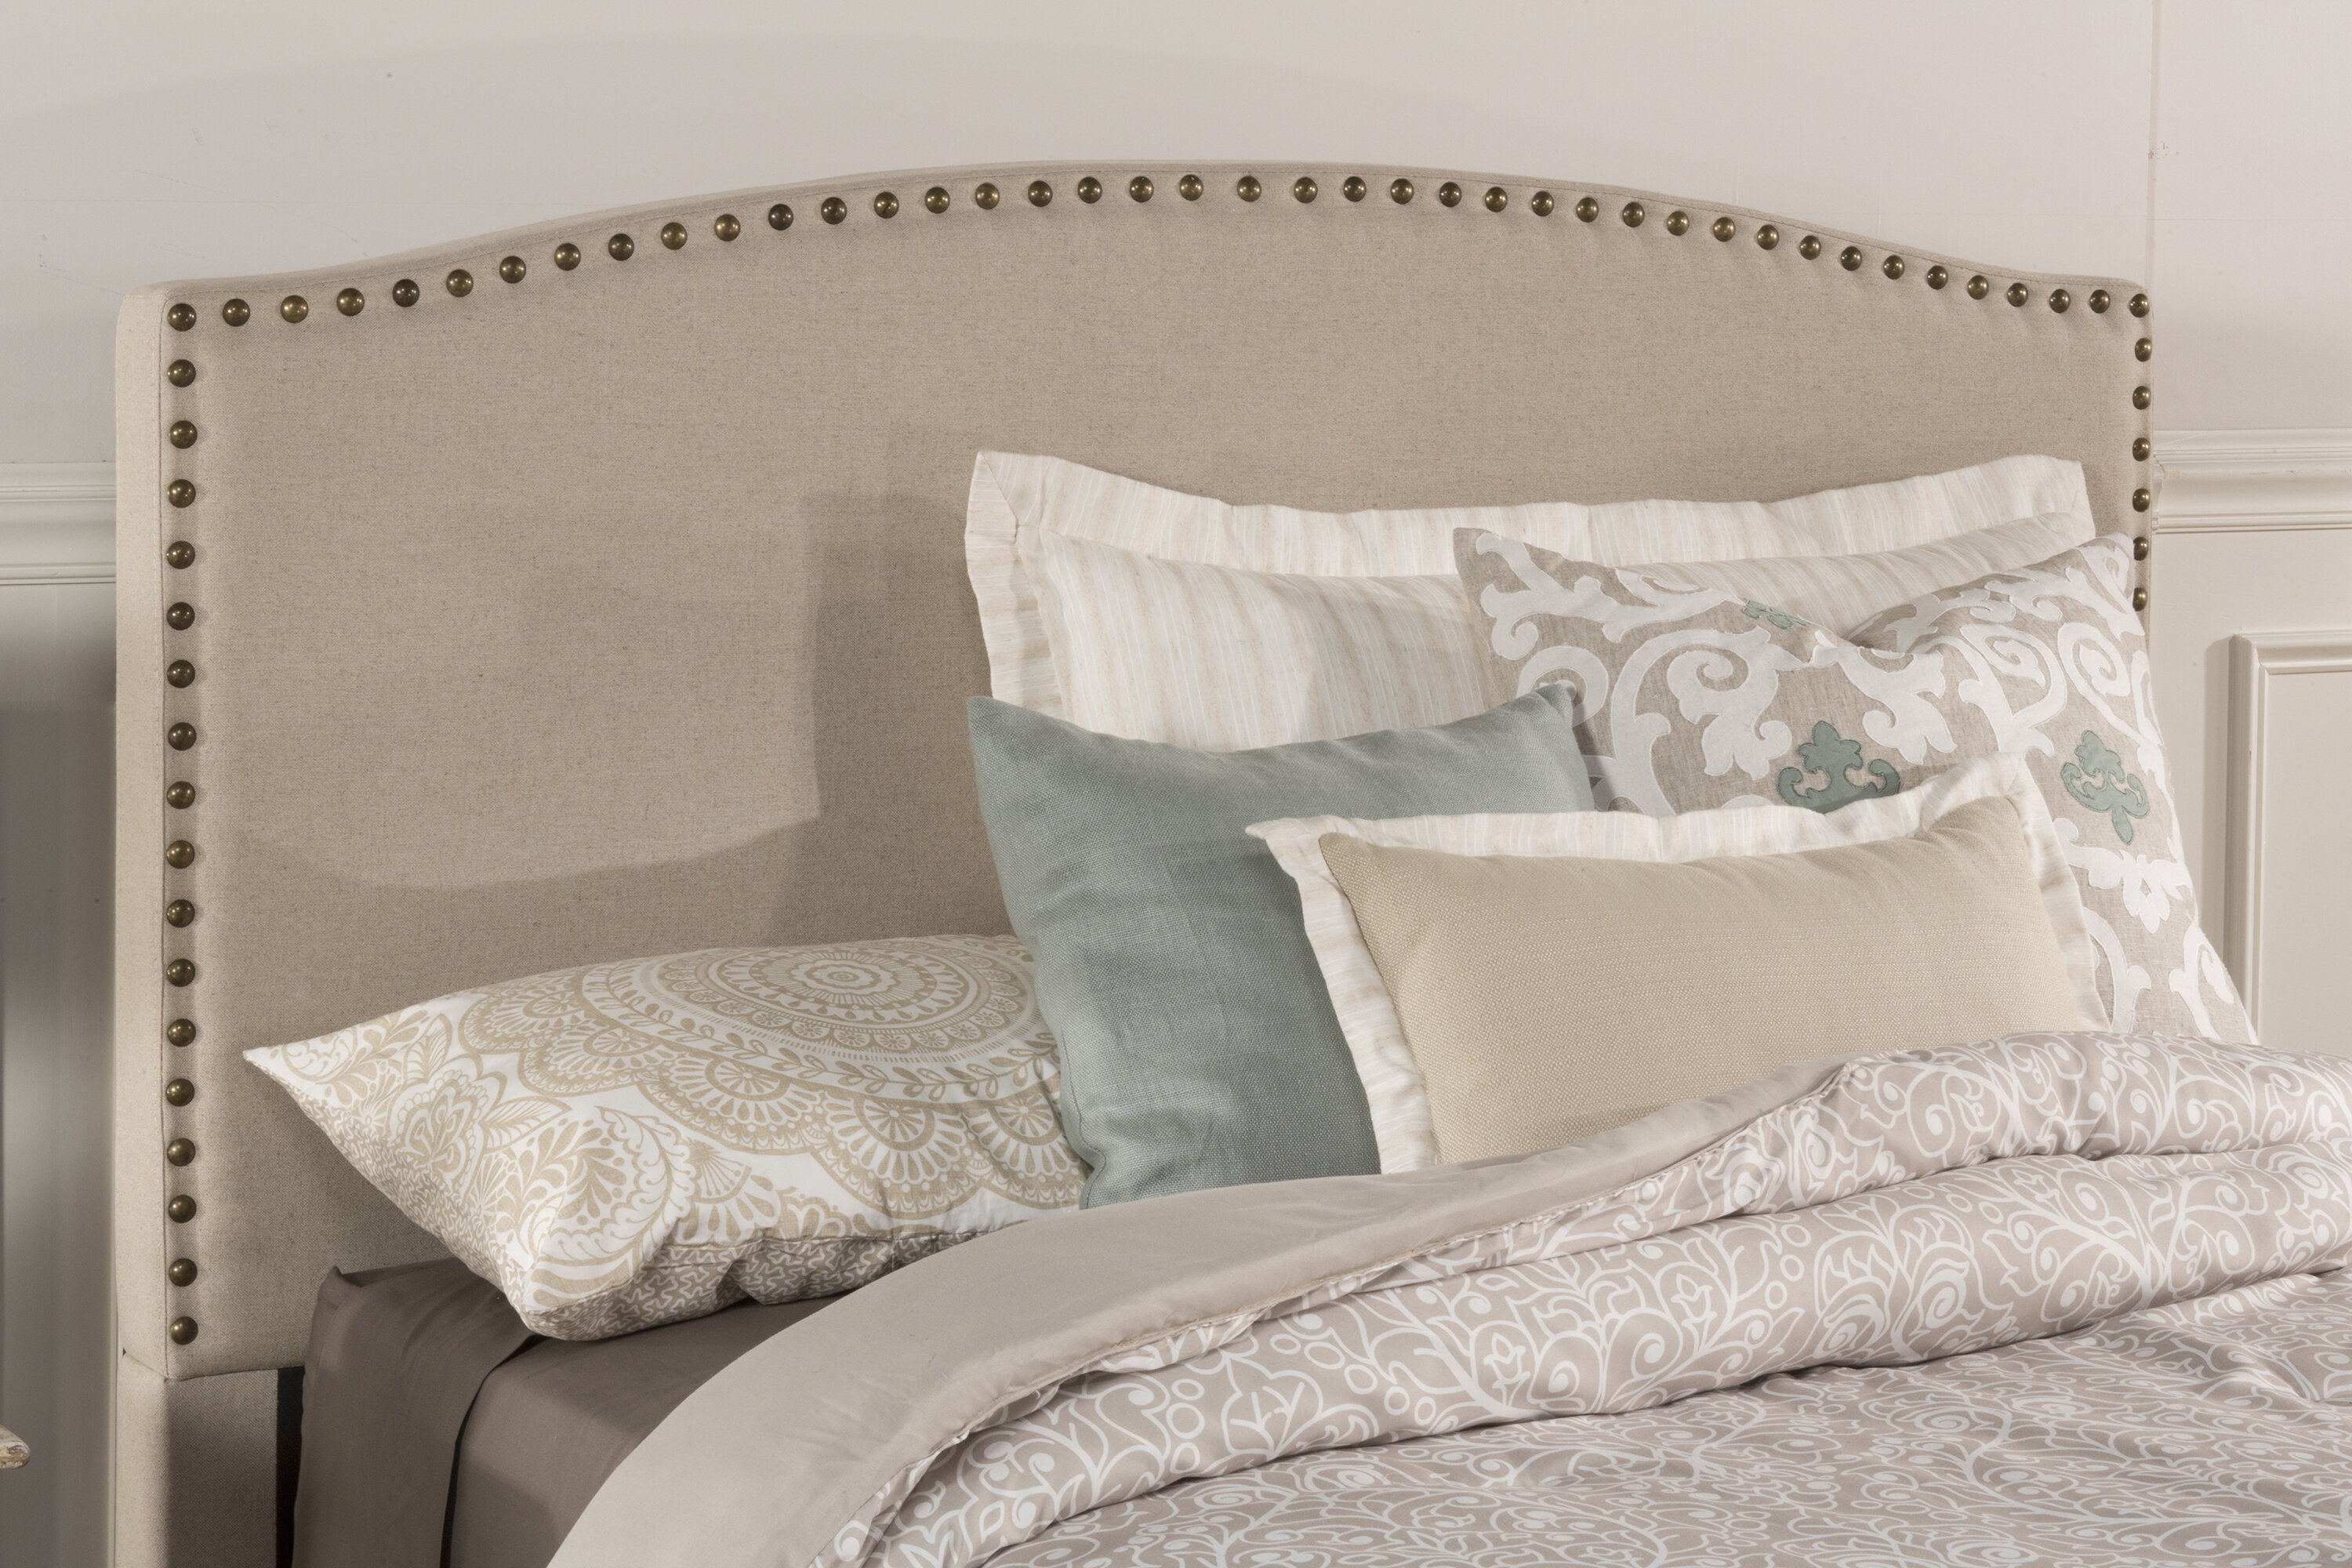 store metal design in to from oversized button and fine attach cheap beds handmade iron bed superking frame addition beige size diy cortina upholstered linen fabric nice nailhead full great nail queen studded headboard tufted king contemporary or bedroom head for headboards of wood elegant sale trim